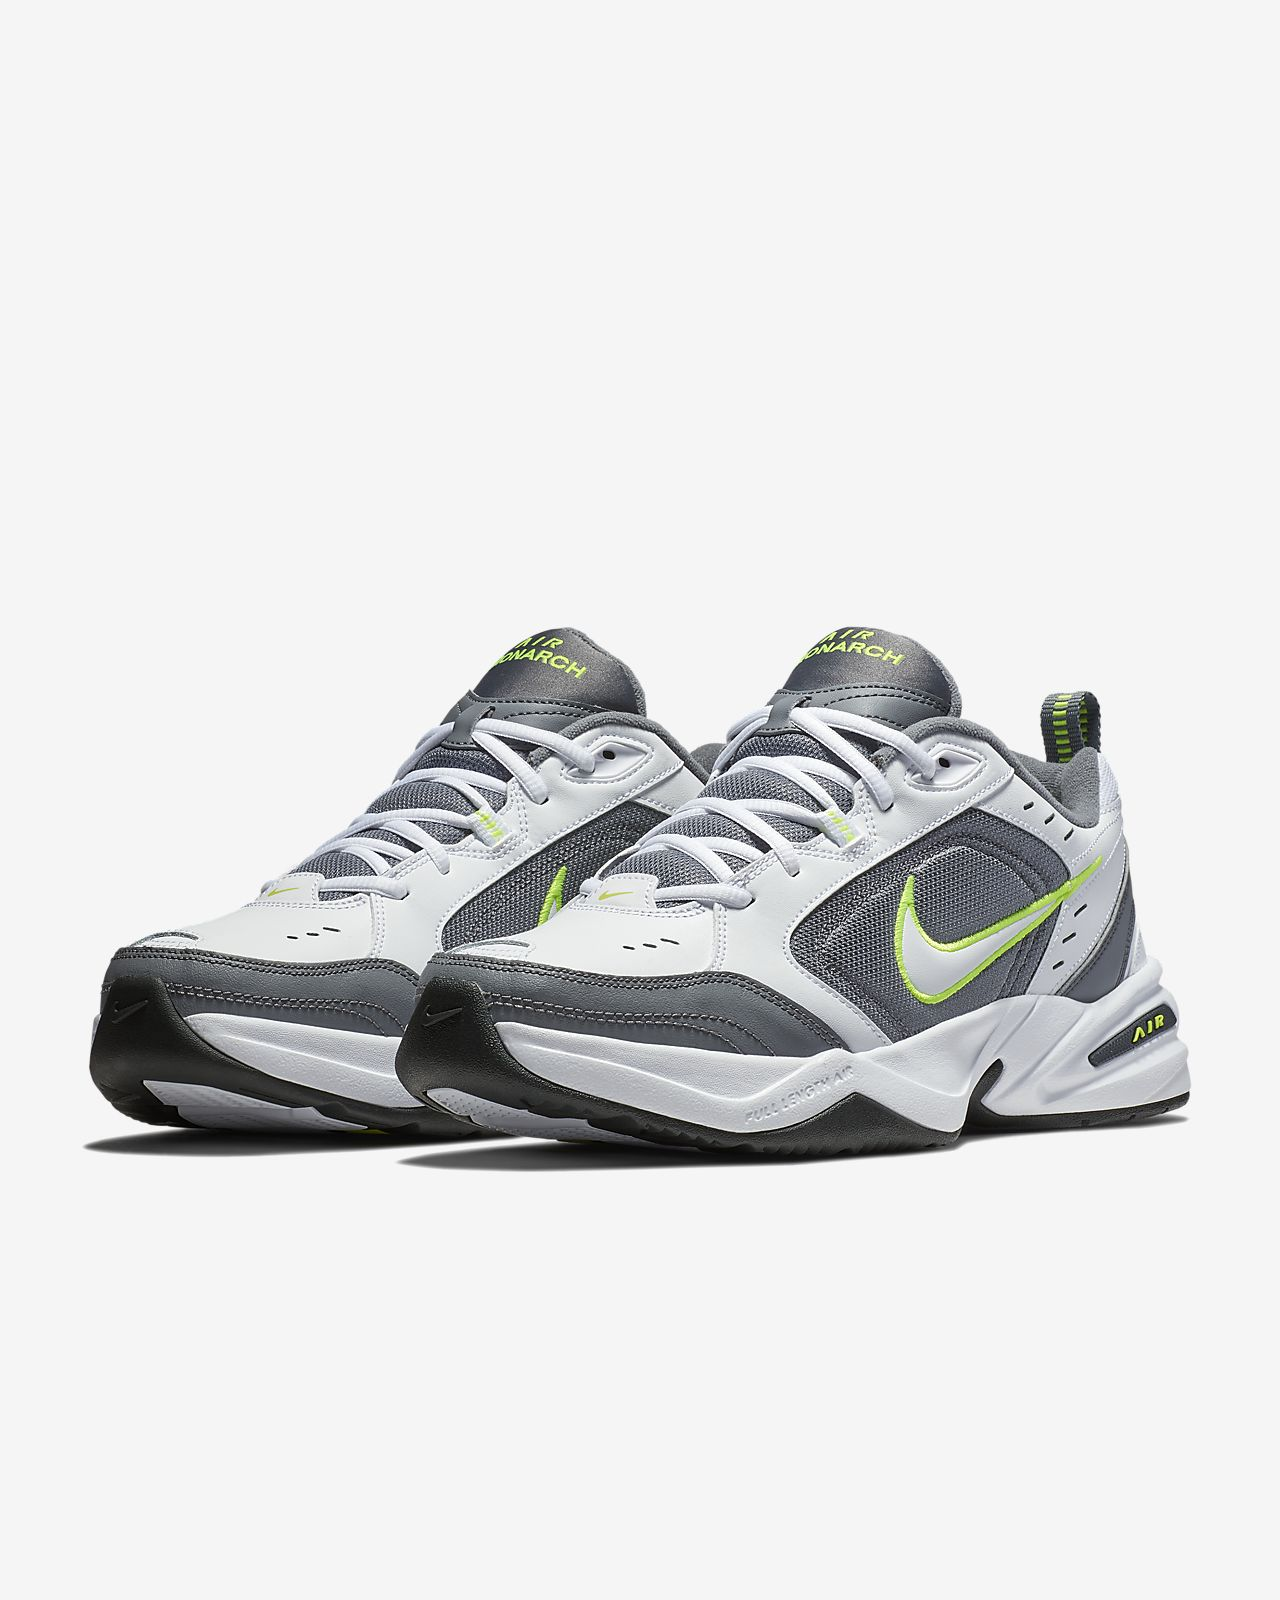 98aaea908324ae Nike Air Monarch IV Lifestyle Gym Shoe. Nike.com